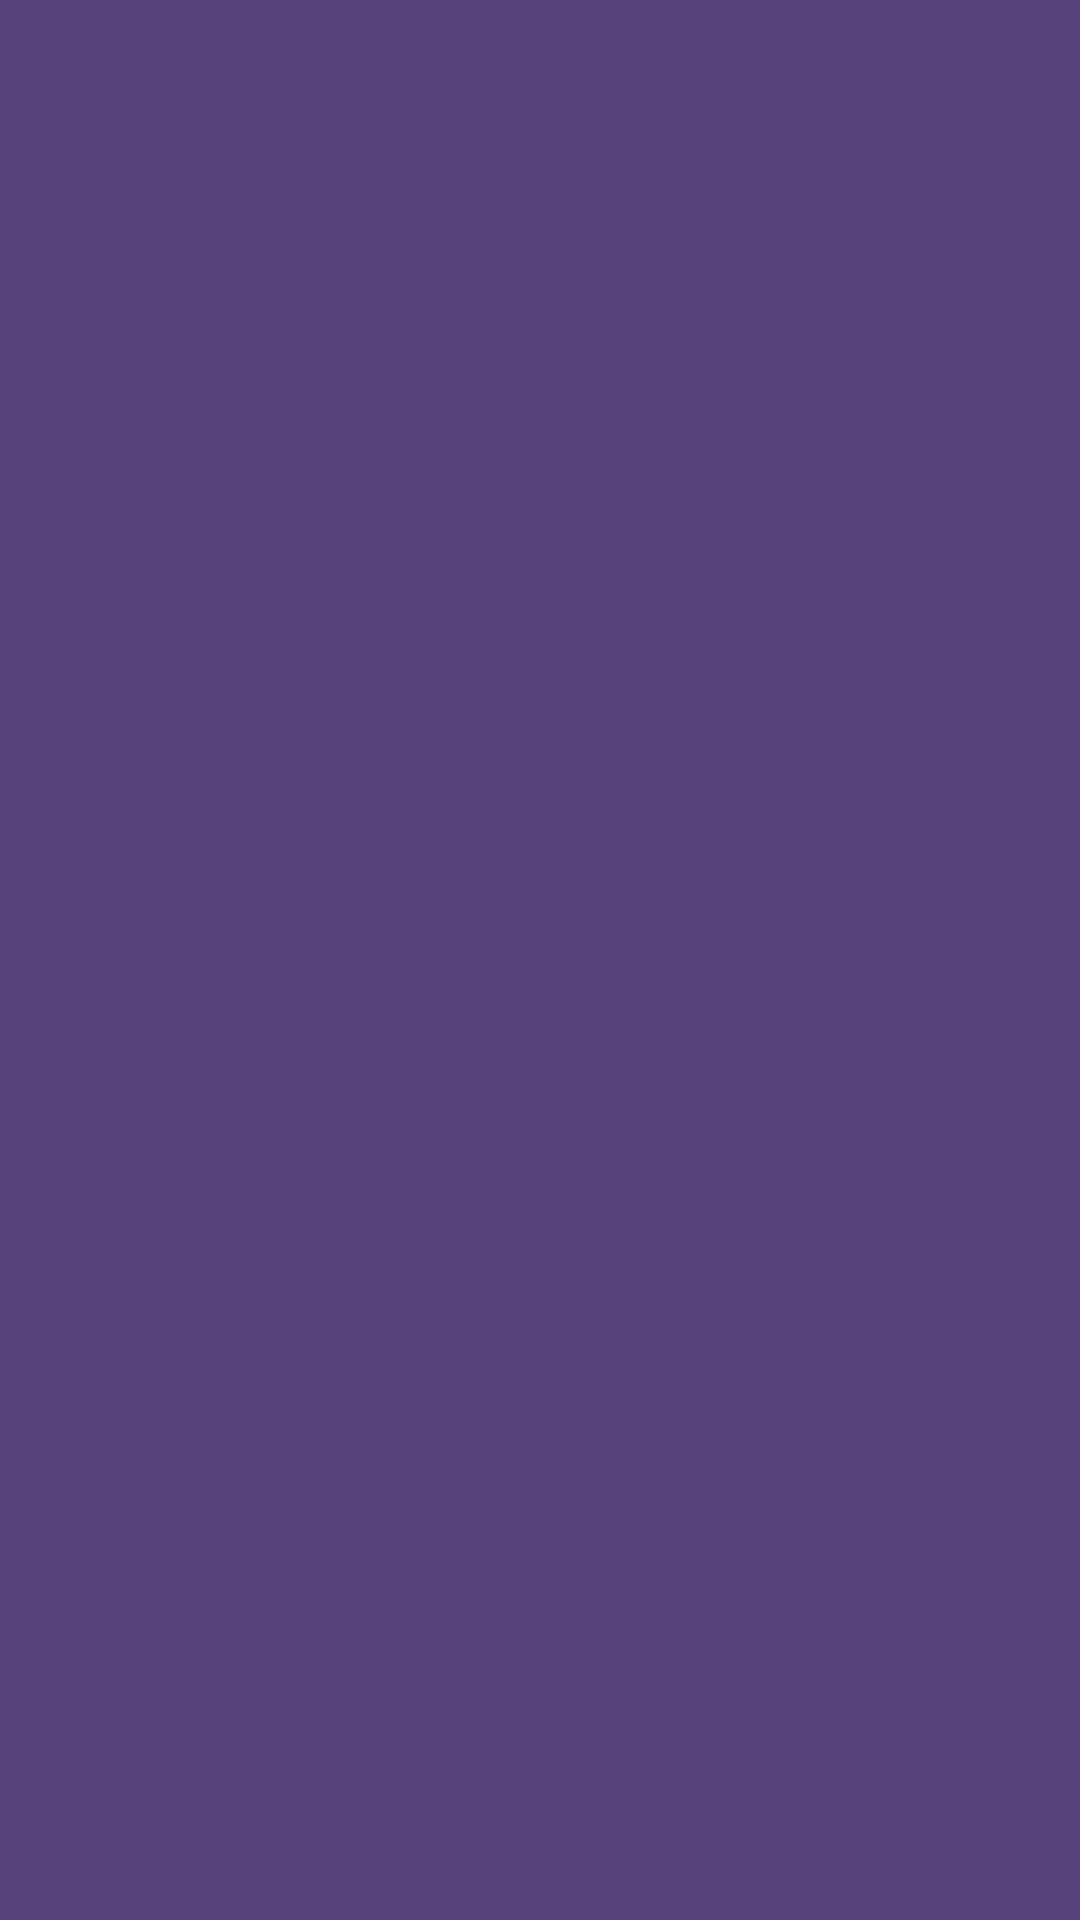 1080x1920 Cyber Grape Solid Color Background